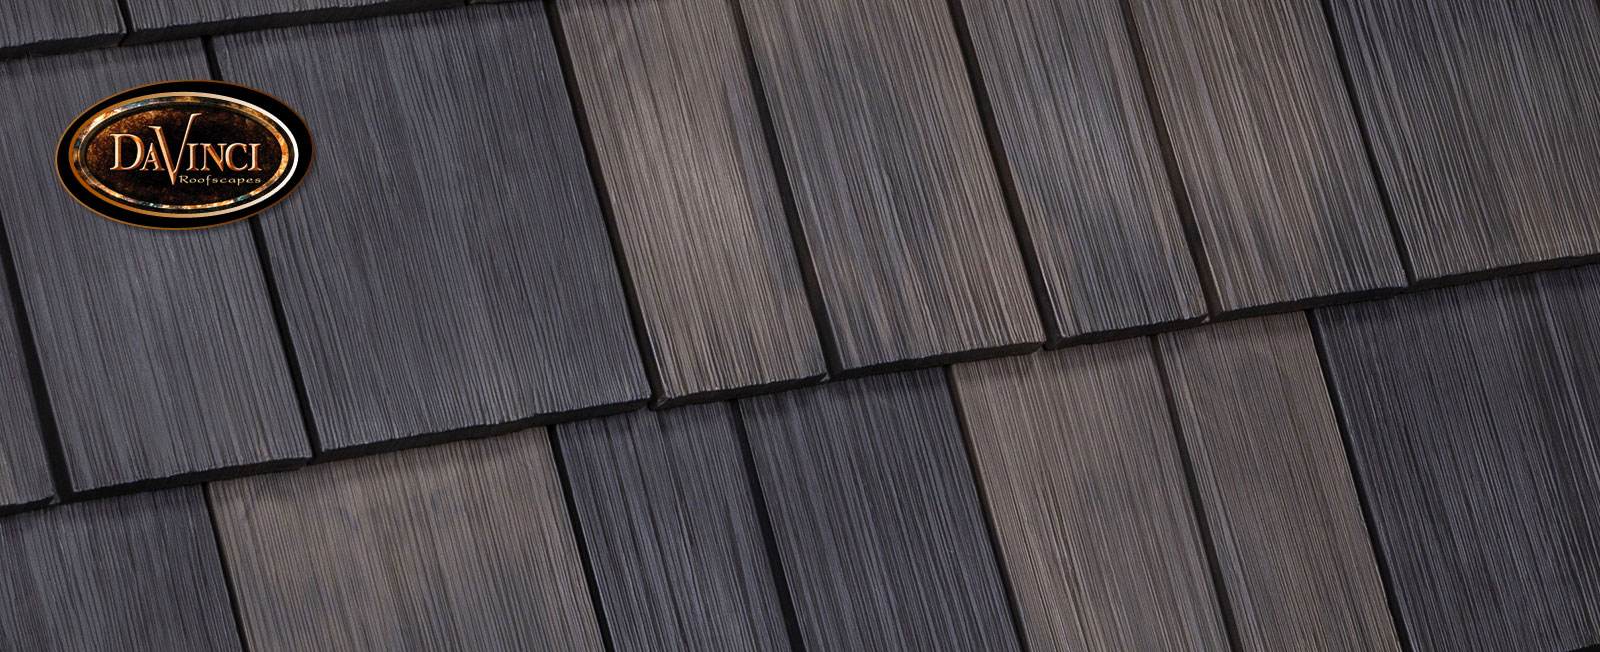 Actual Roofing Company Images